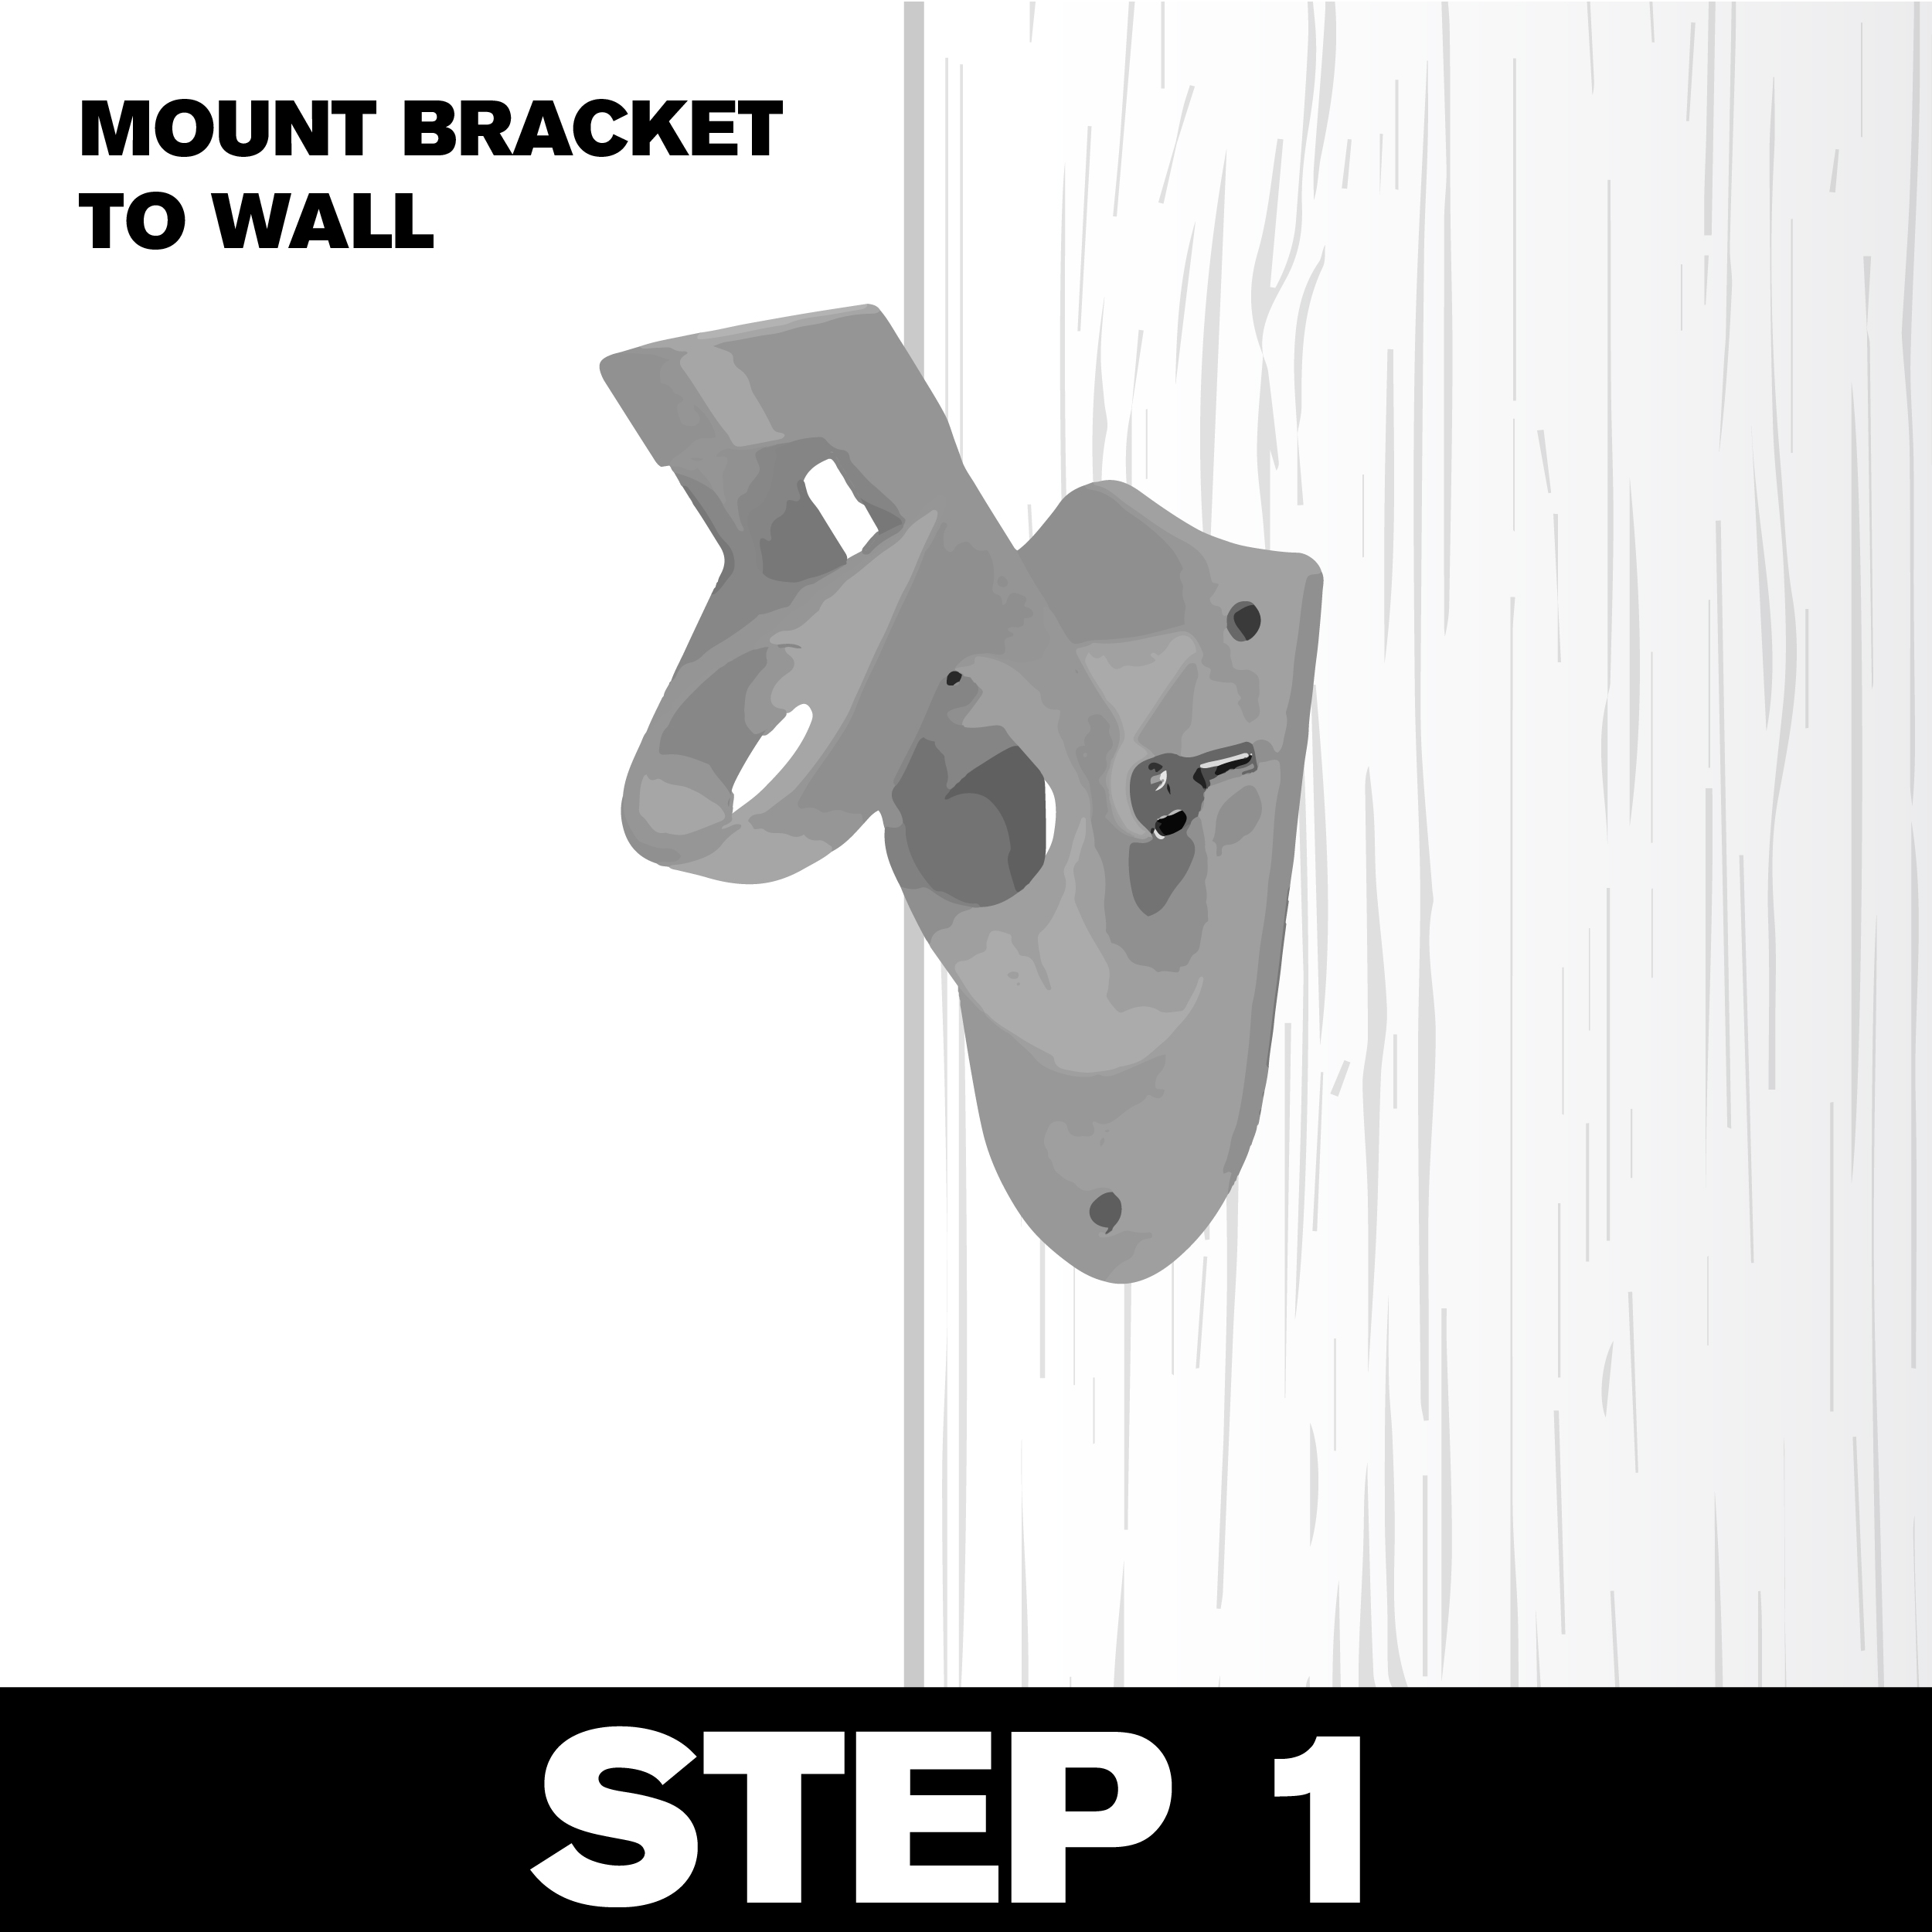 Wall Bracket Hanging - Step 1